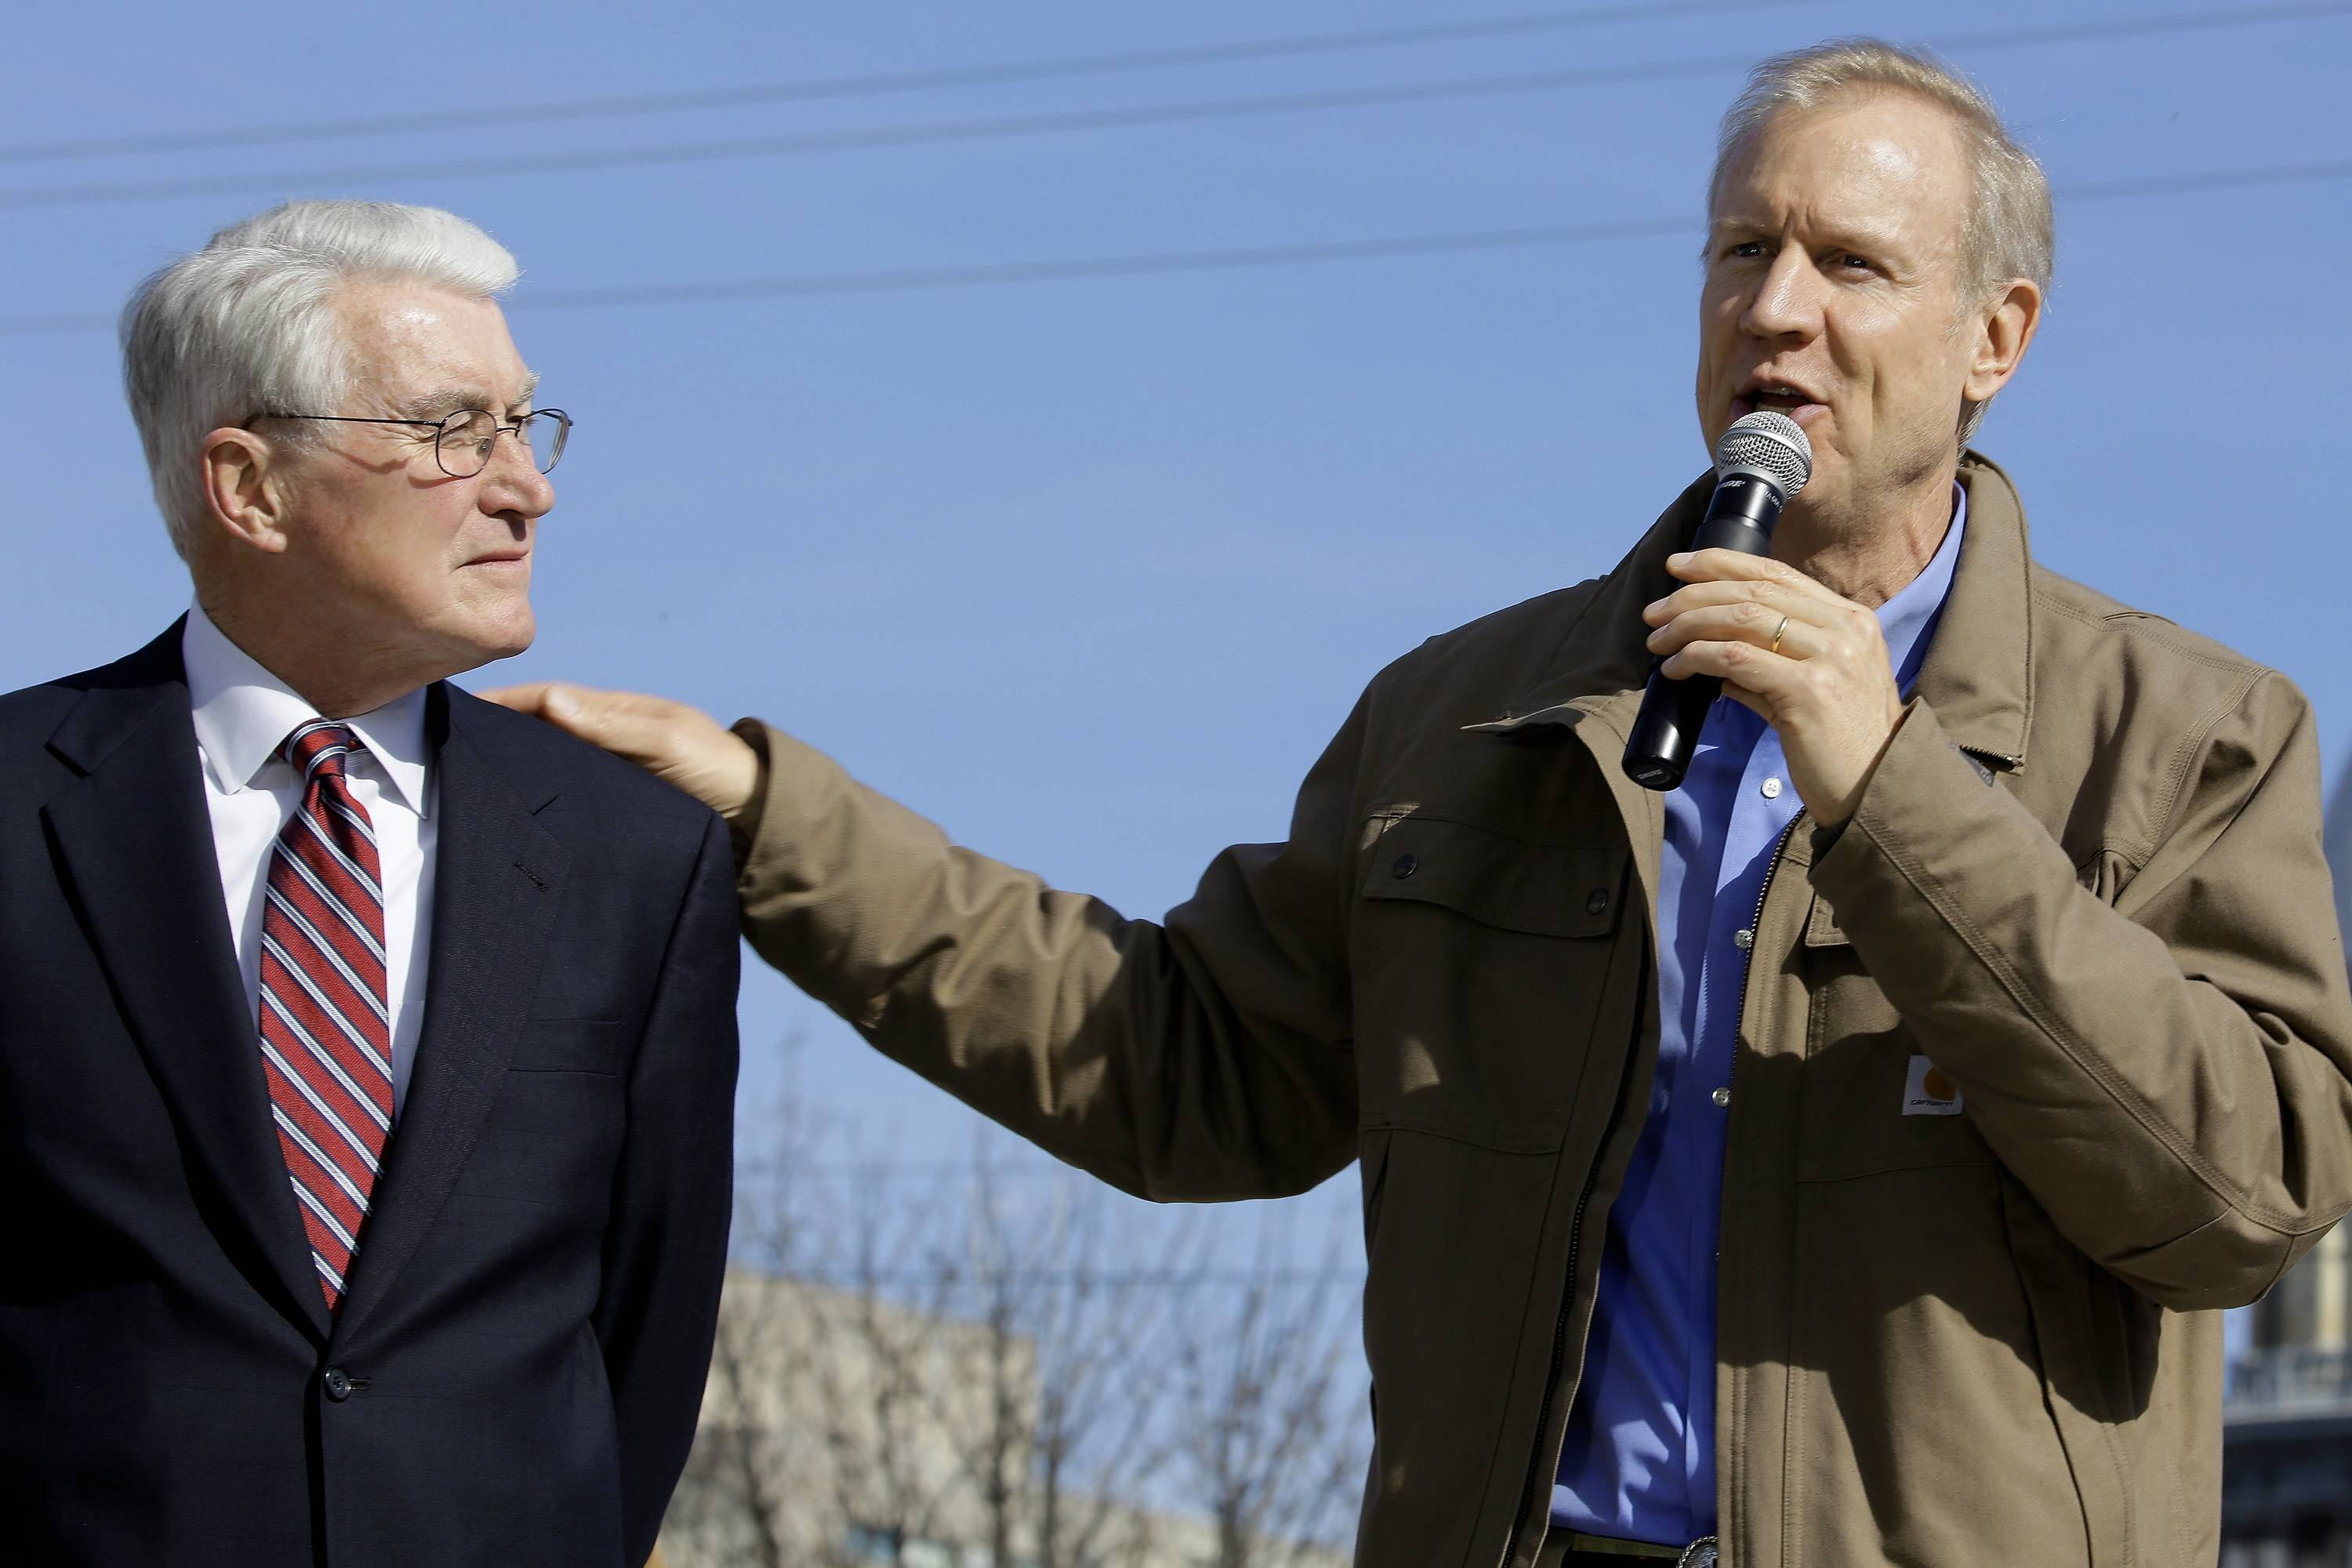 Former Gov. Jim Edgar, shown with Gov. Bruce Rauner, has said in recent days that Illinois is in bad shape.